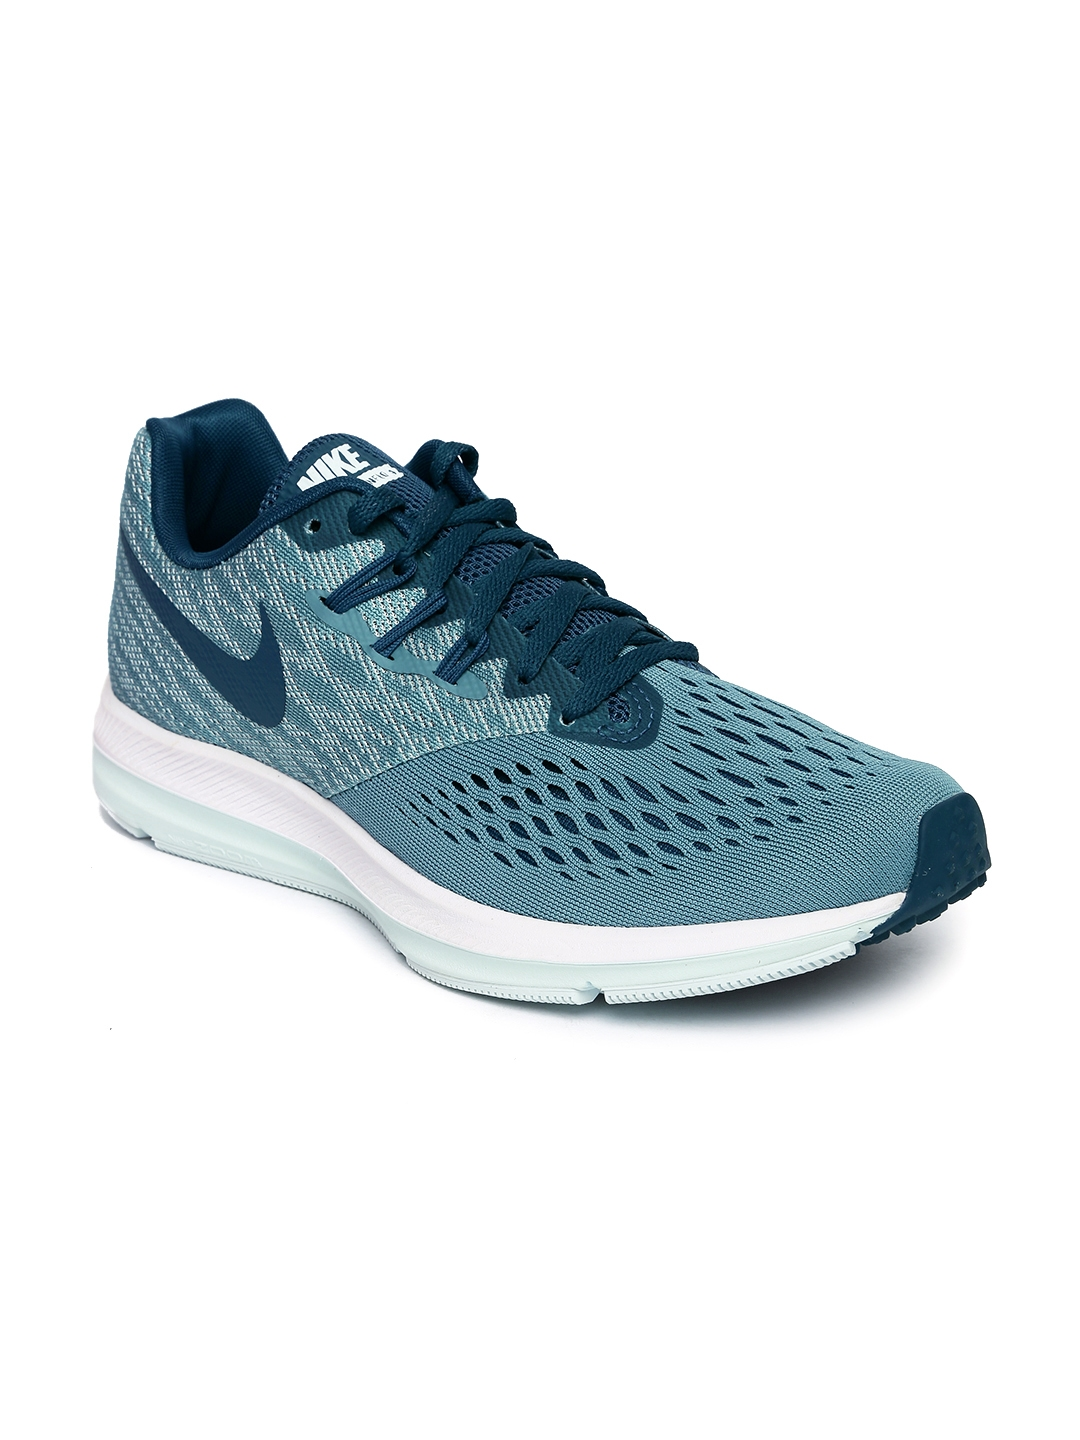 703fd7770272 Buy Nike Women Teal Blue ZOOM WINFLO 4 Running Shoes - Sports Shoes ...